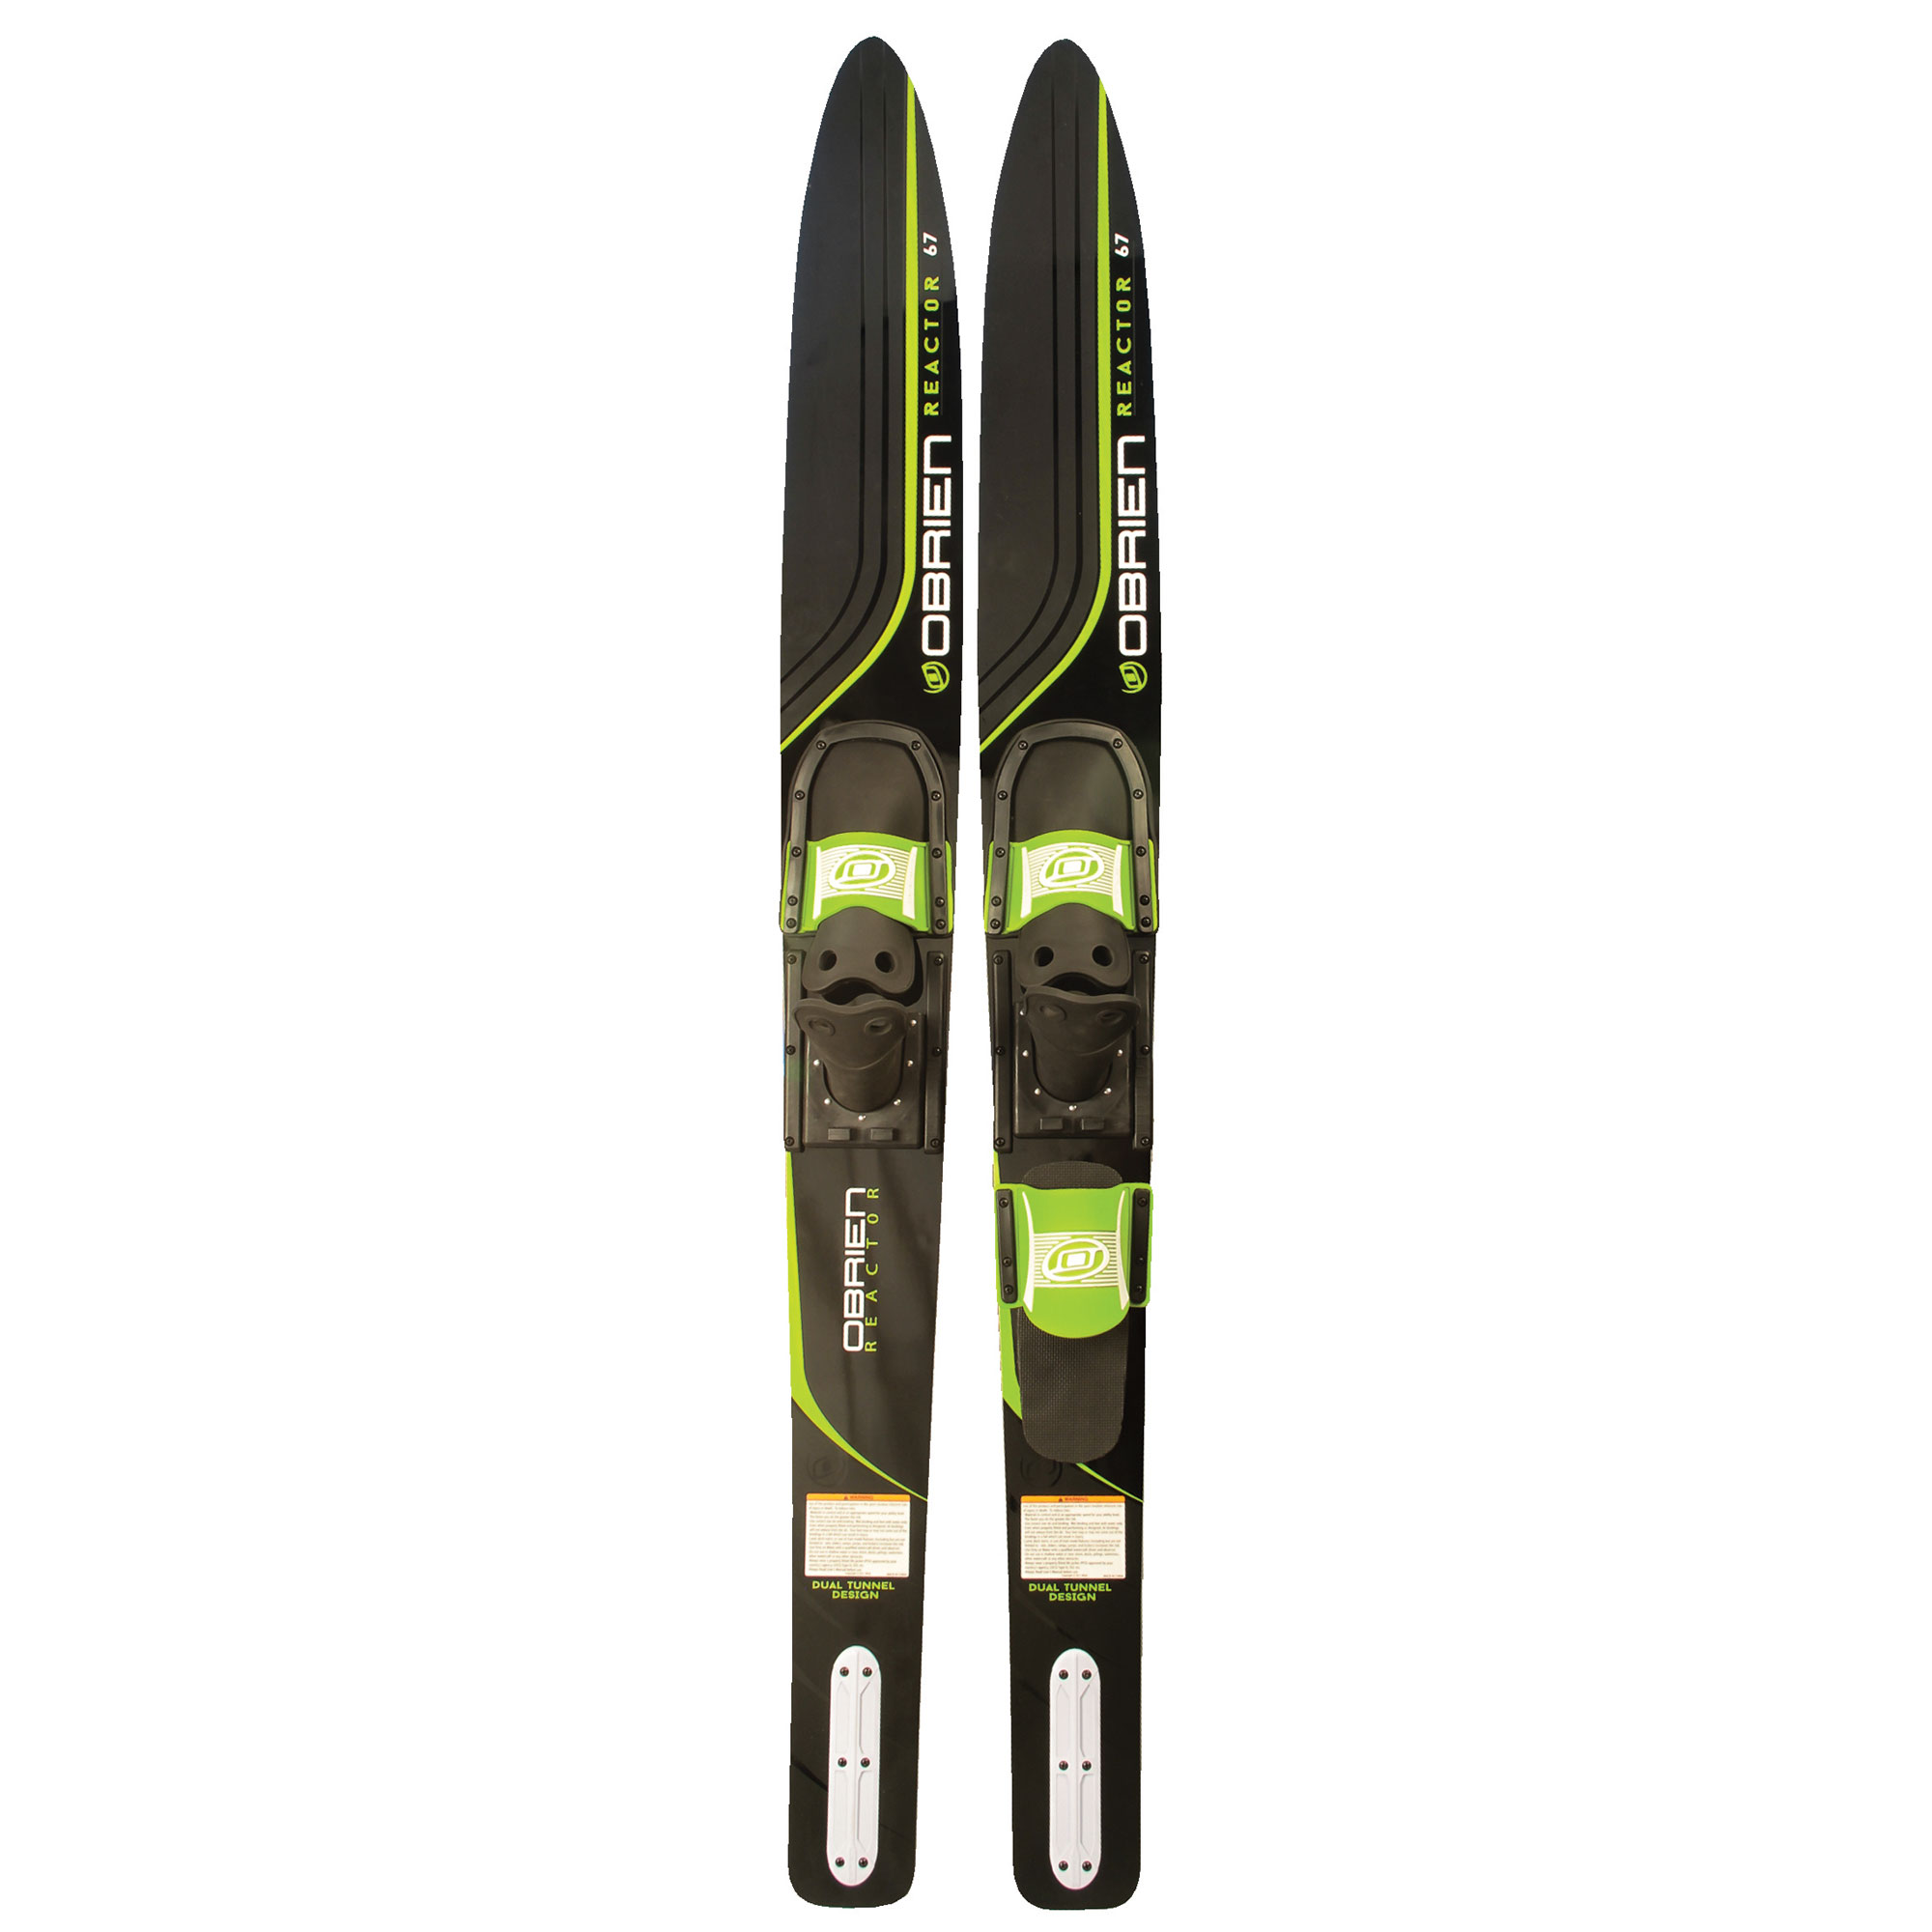 OBrien Reactor 67 Inch Combo Water Skis with 700 Adjustable Bindings, Green by O'Brien Watersports